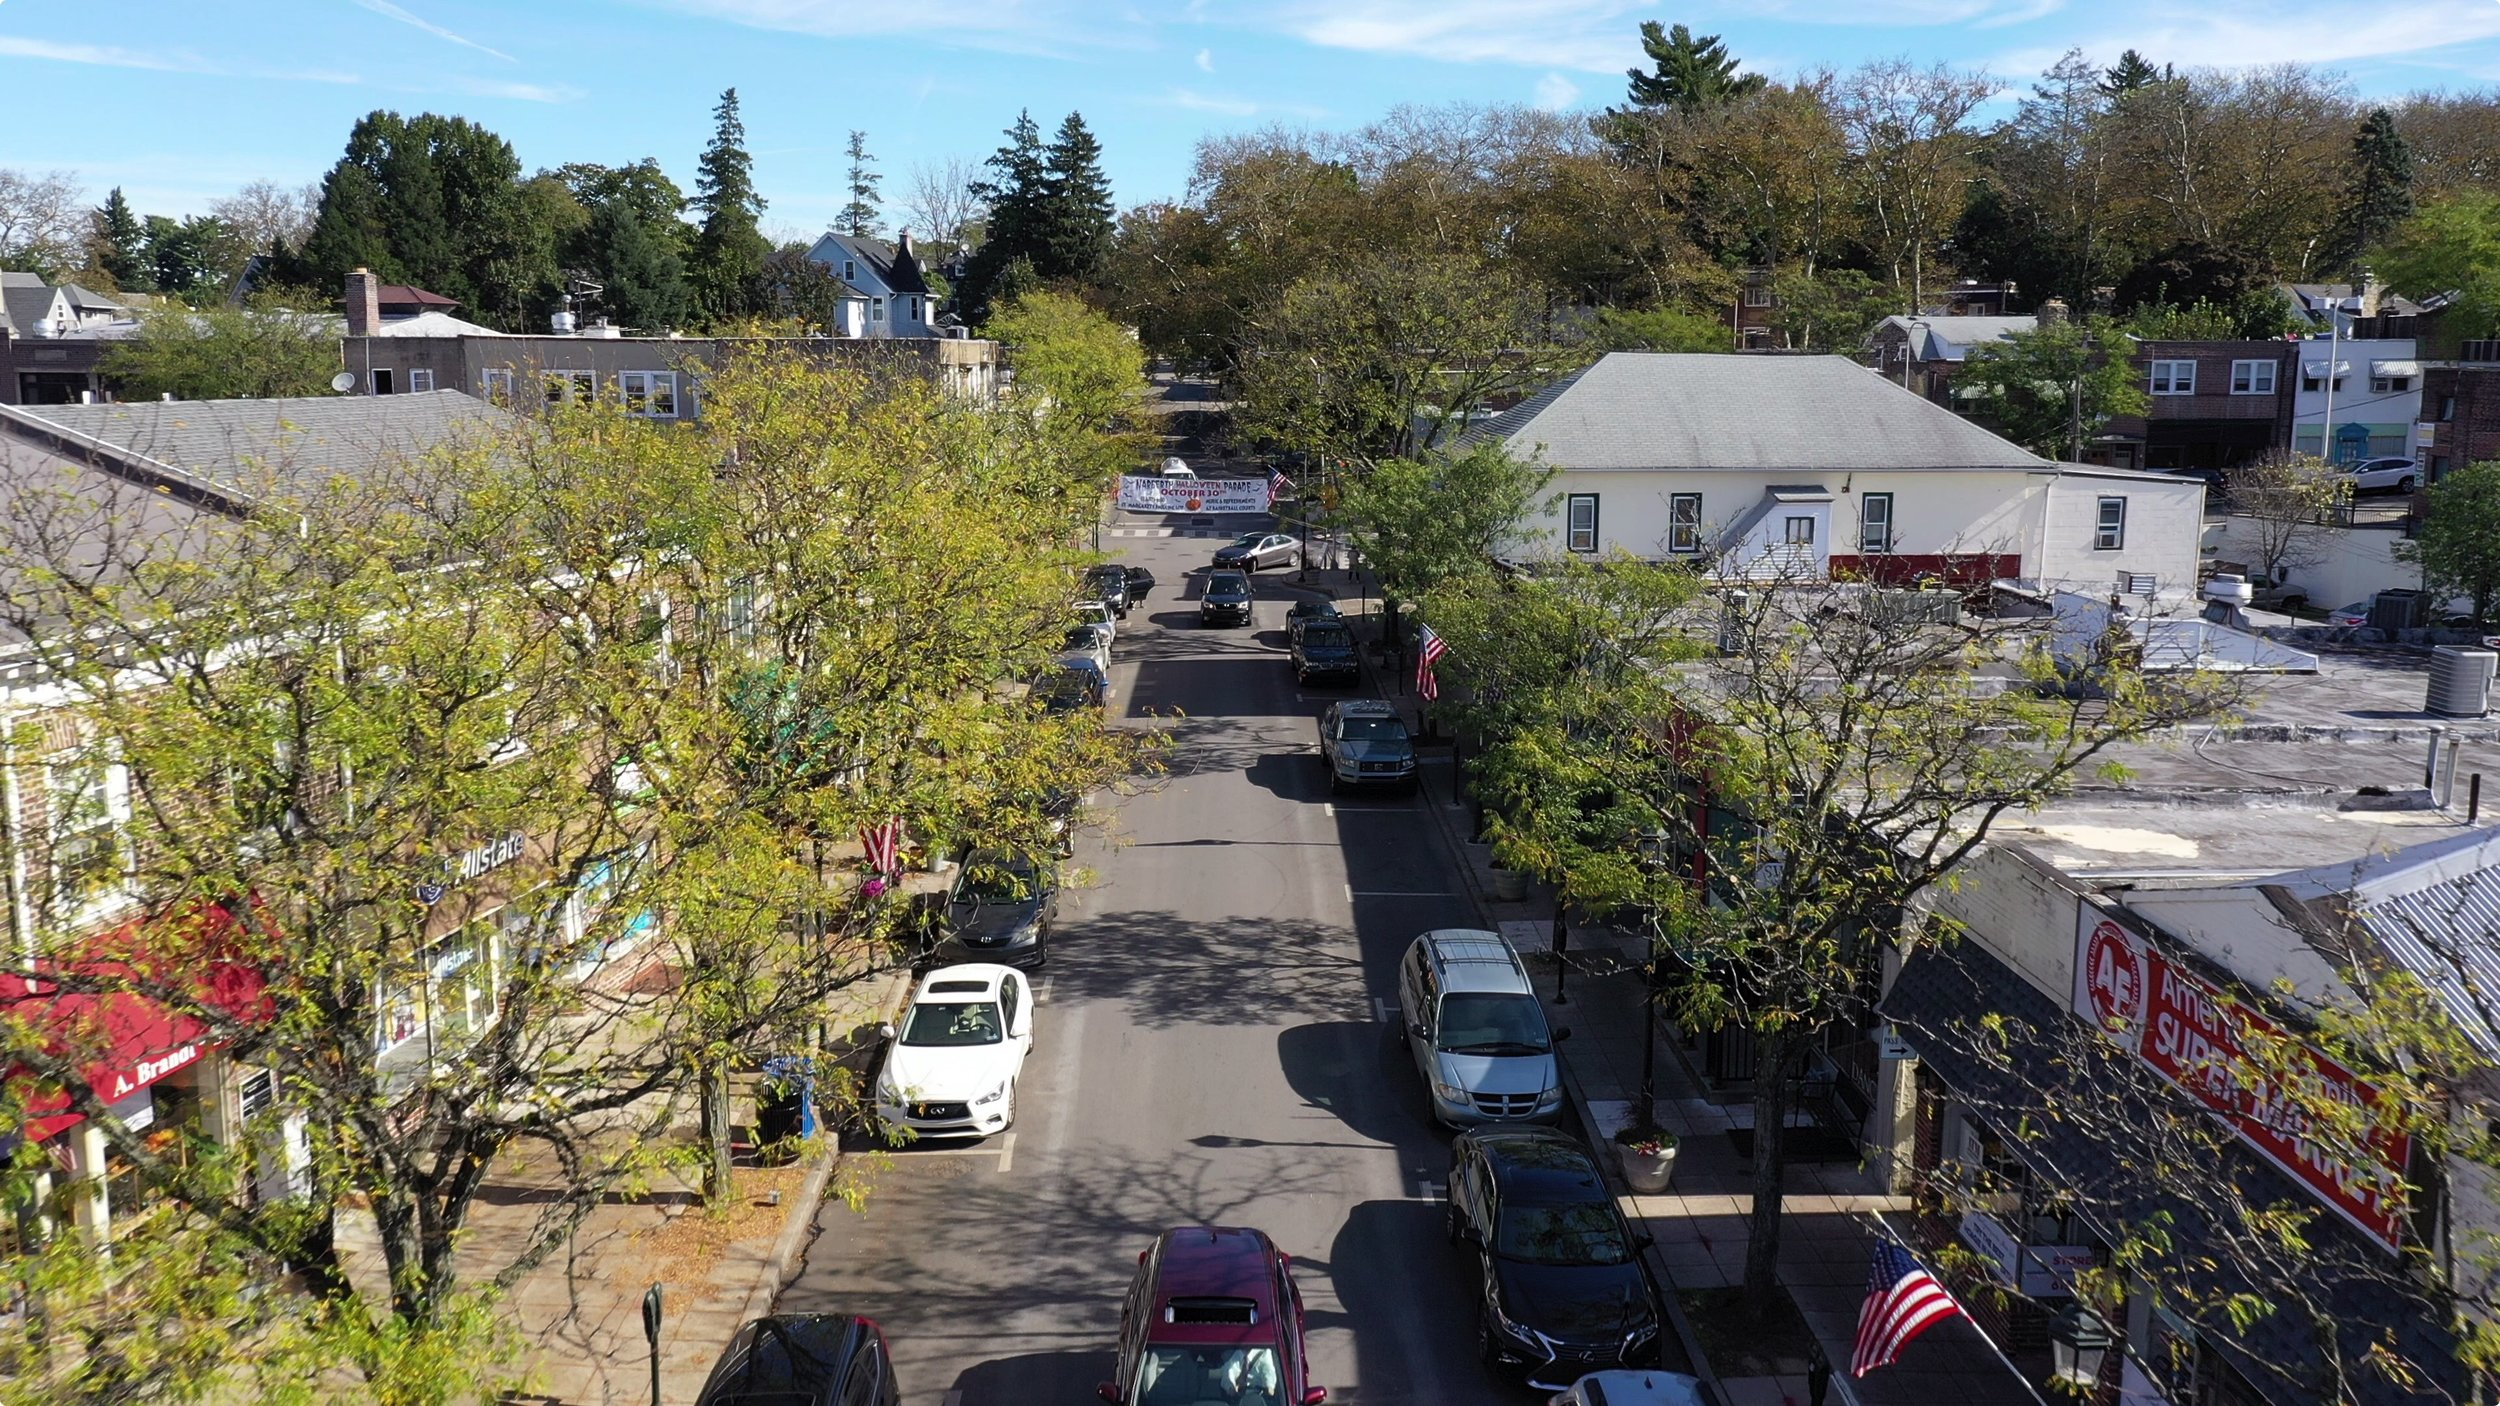 Downtown Narberth